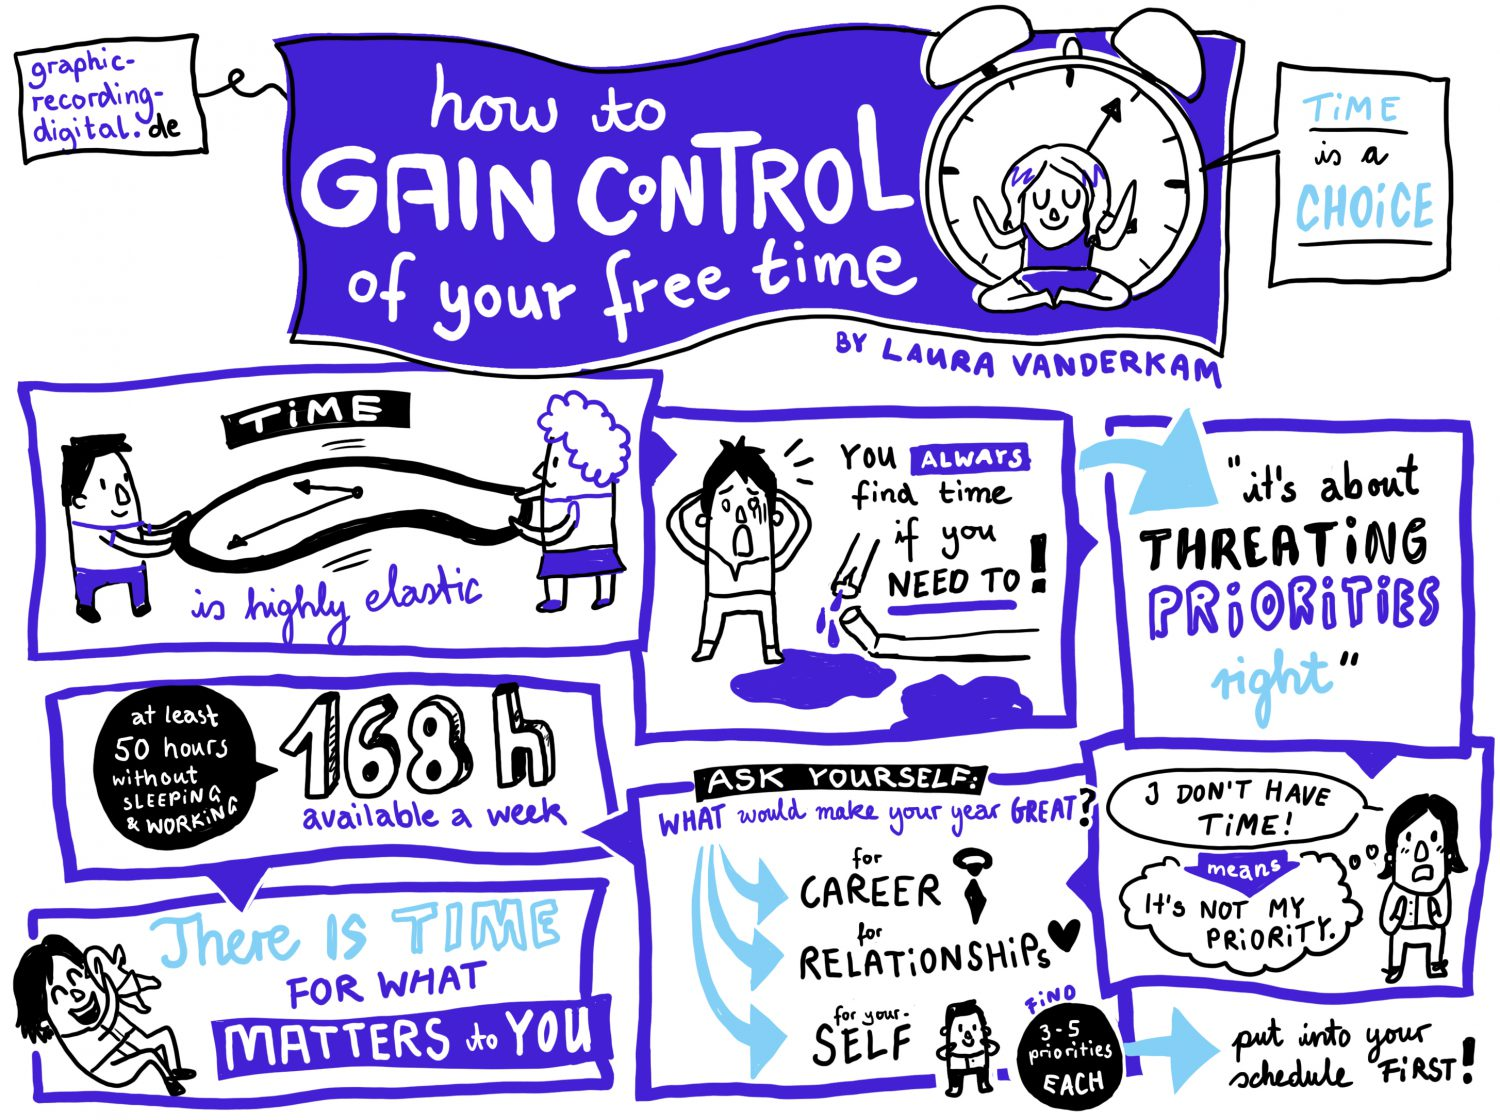 Weekly Graphic Recording TED talk Free time Laura Vanderkam